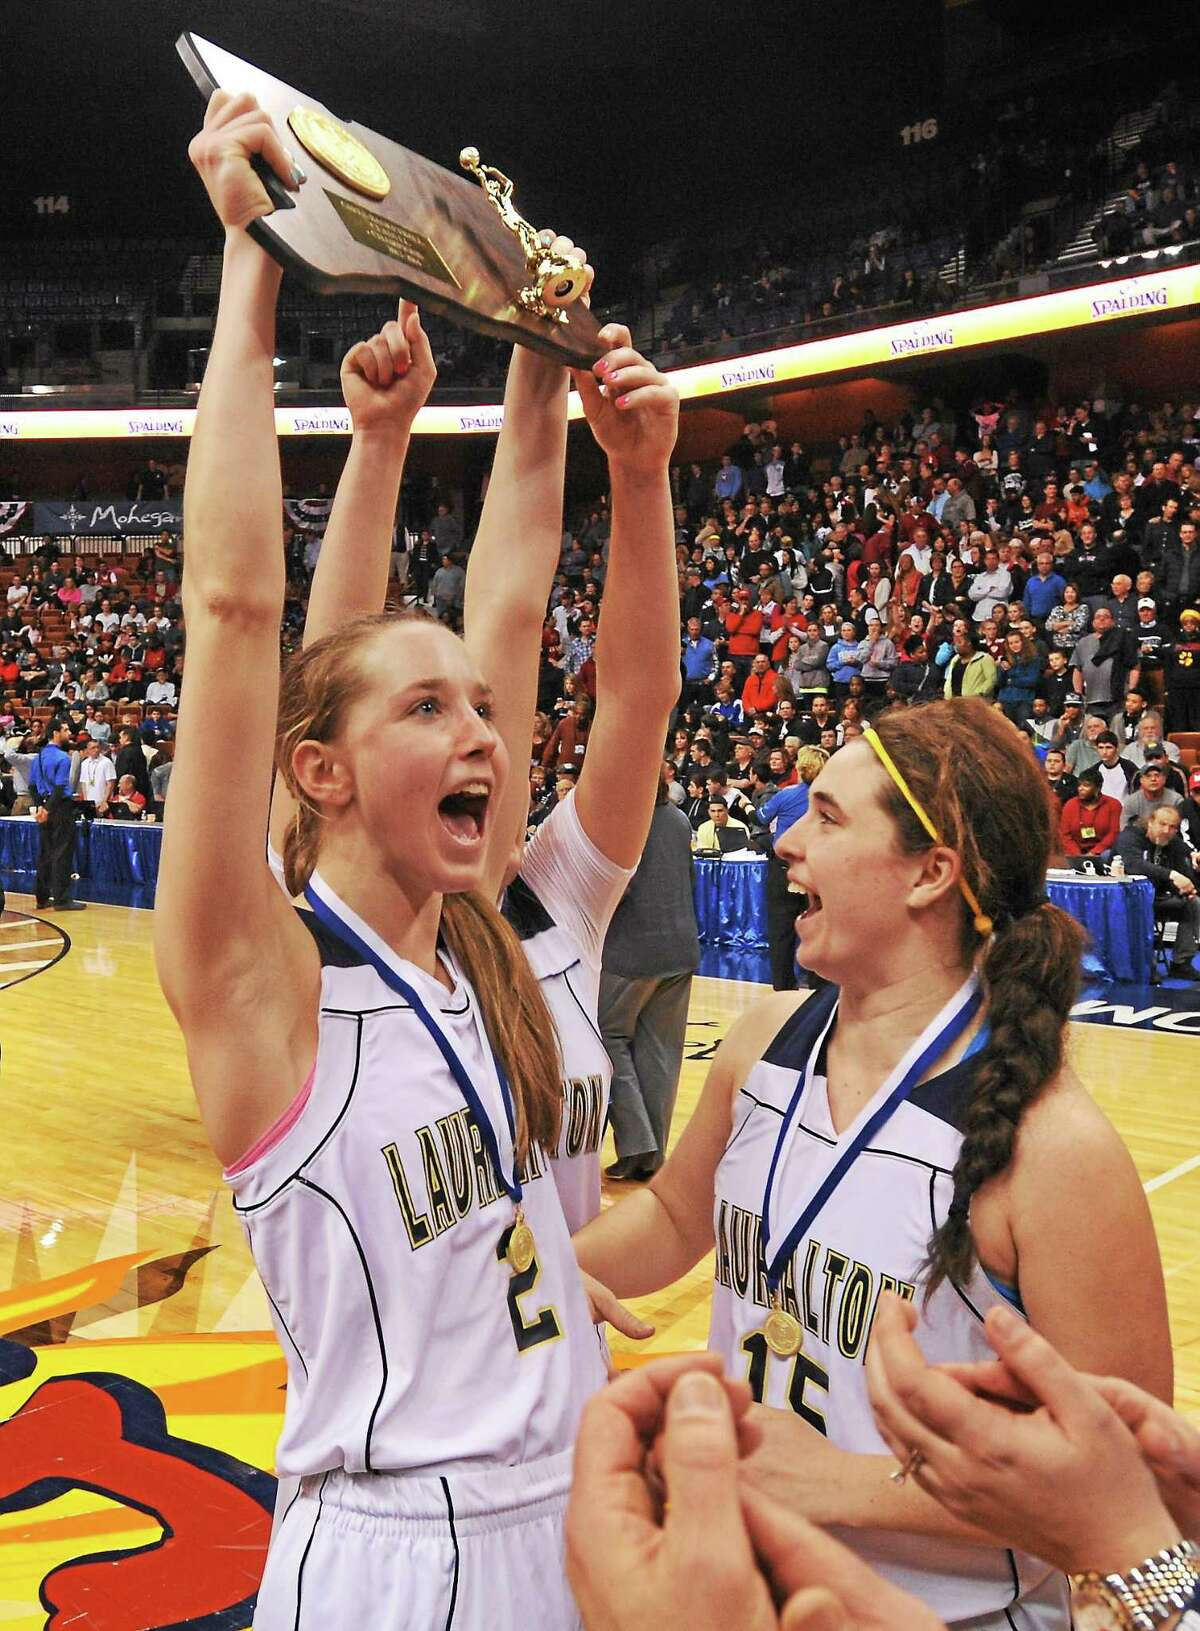 Emma McCarthy, left, Maureen Connolly and Lauralton Hall beat South Windsor 65-53 to win the Class LL state title this past weekend.